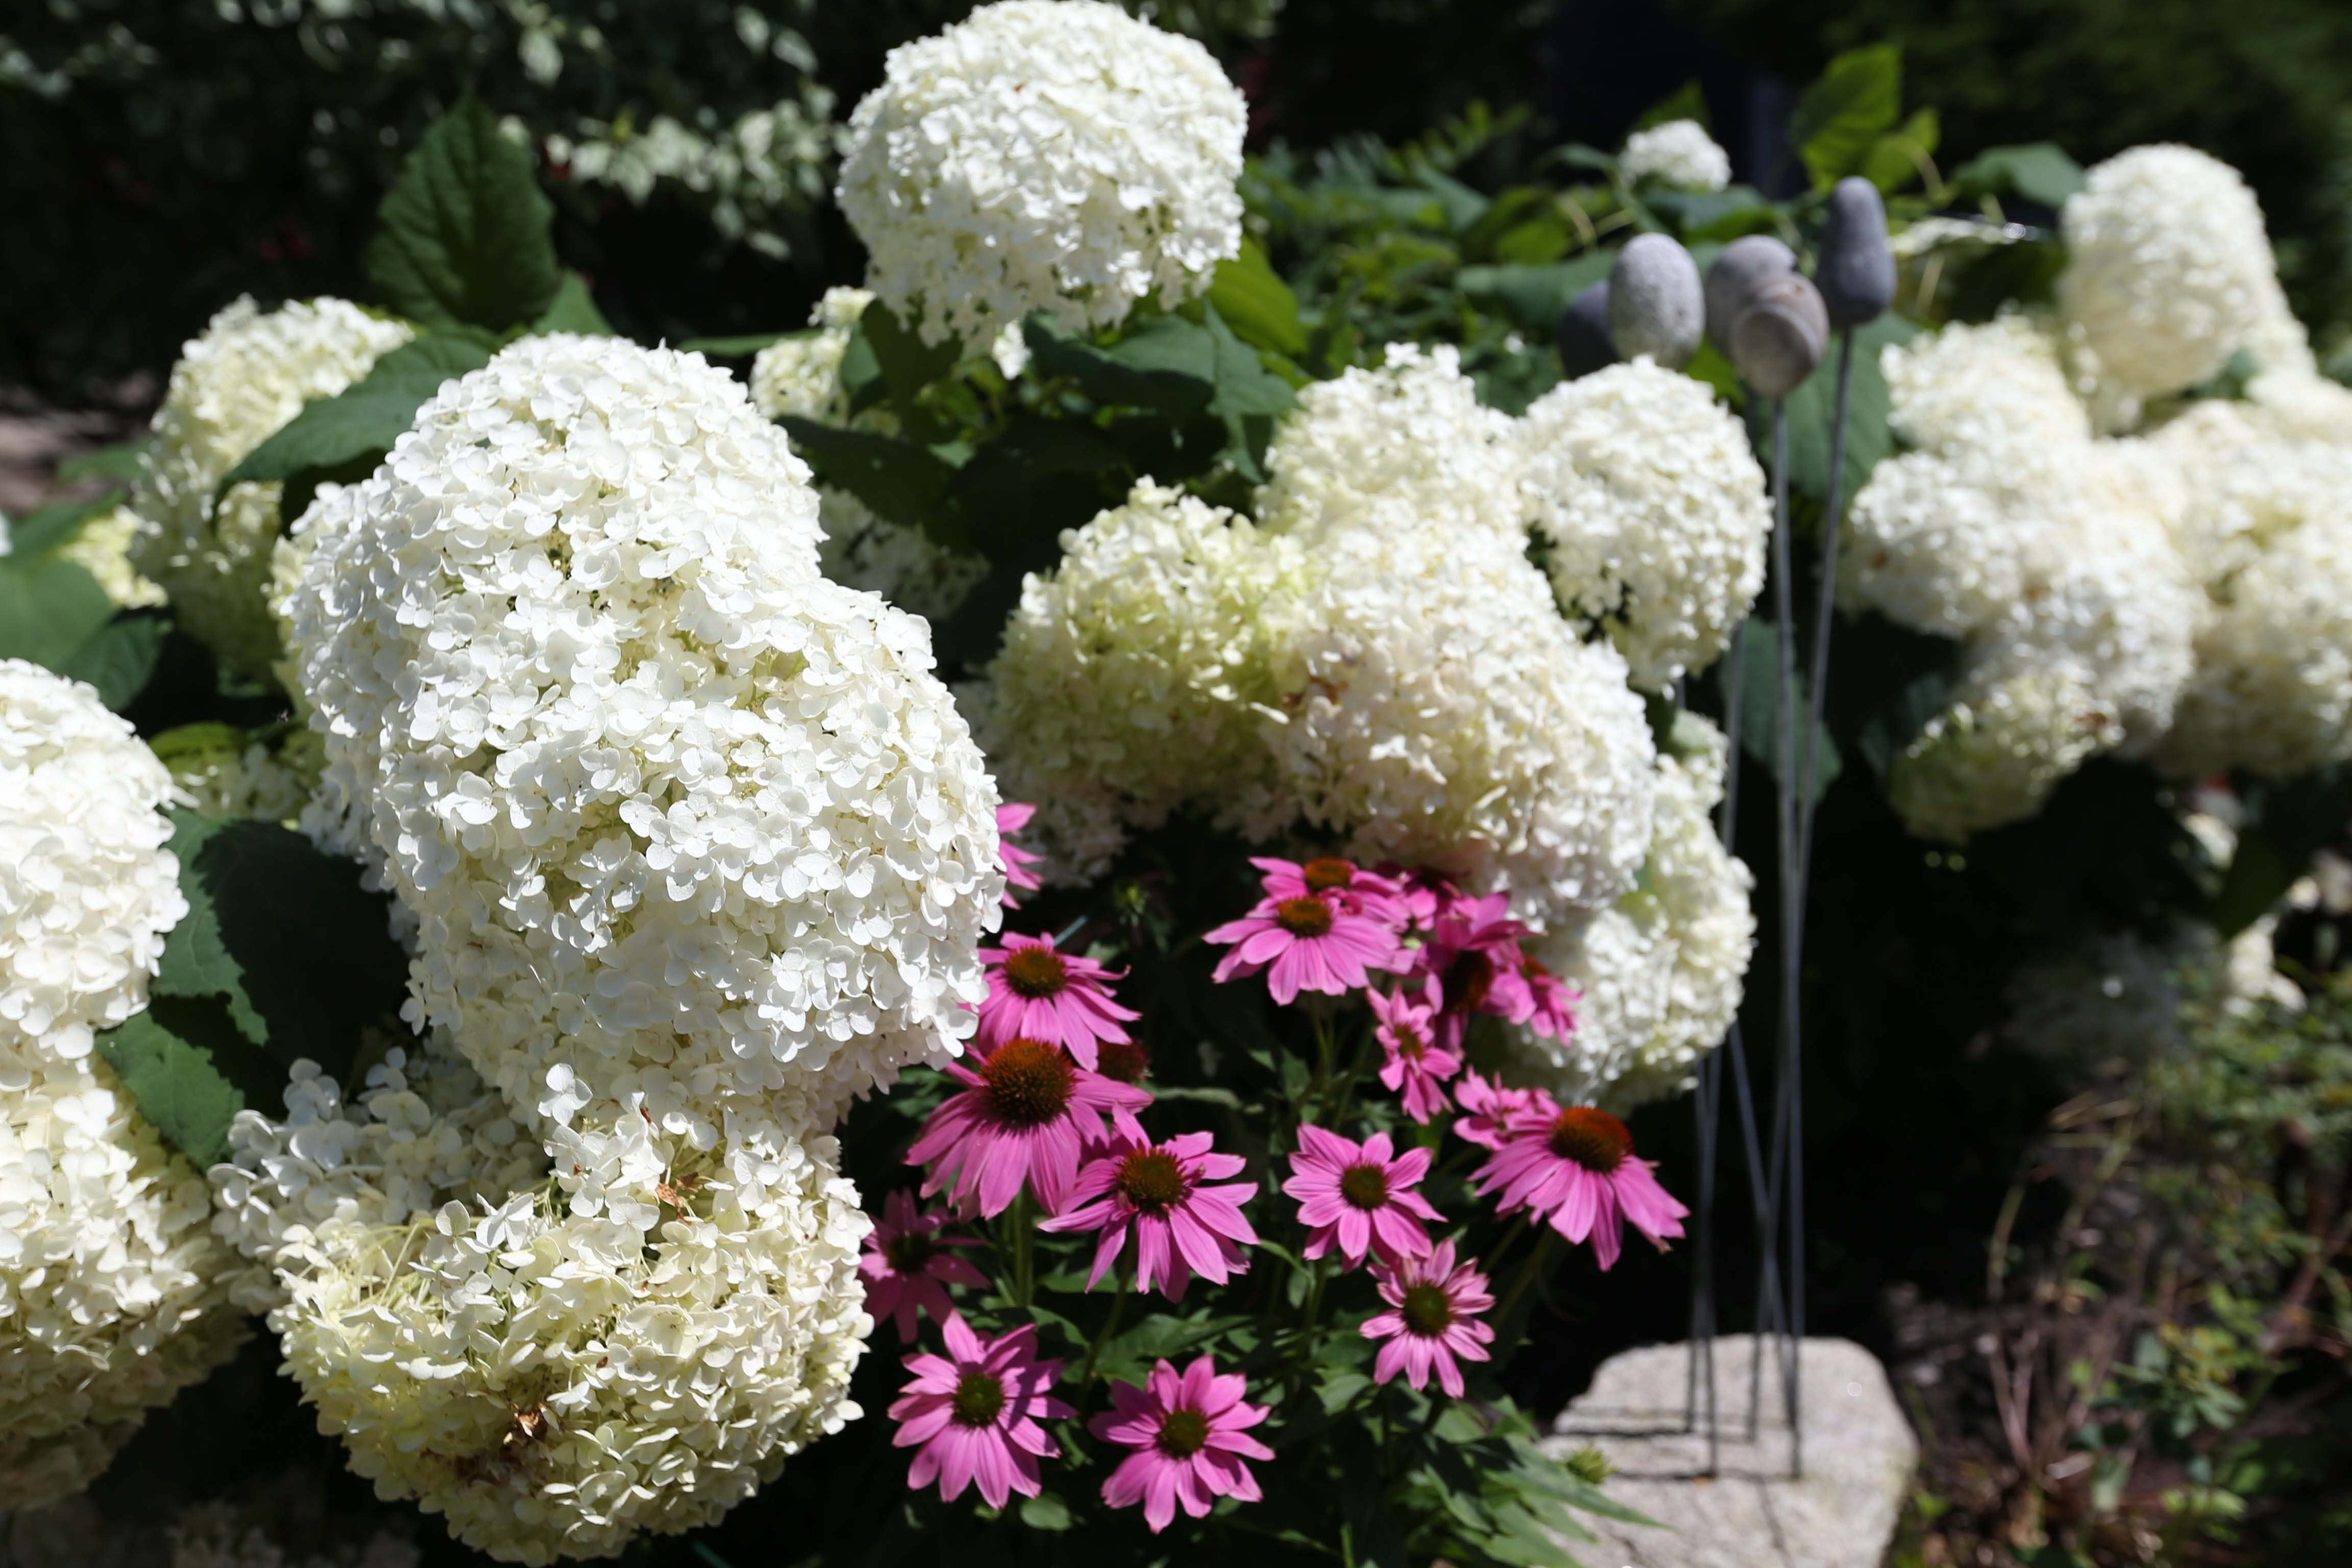 Hydrangeas will be the topic at the April 11 meeting of the Kenmore Garden Club. (Sharon Cantillon/Buffalo News file photo)